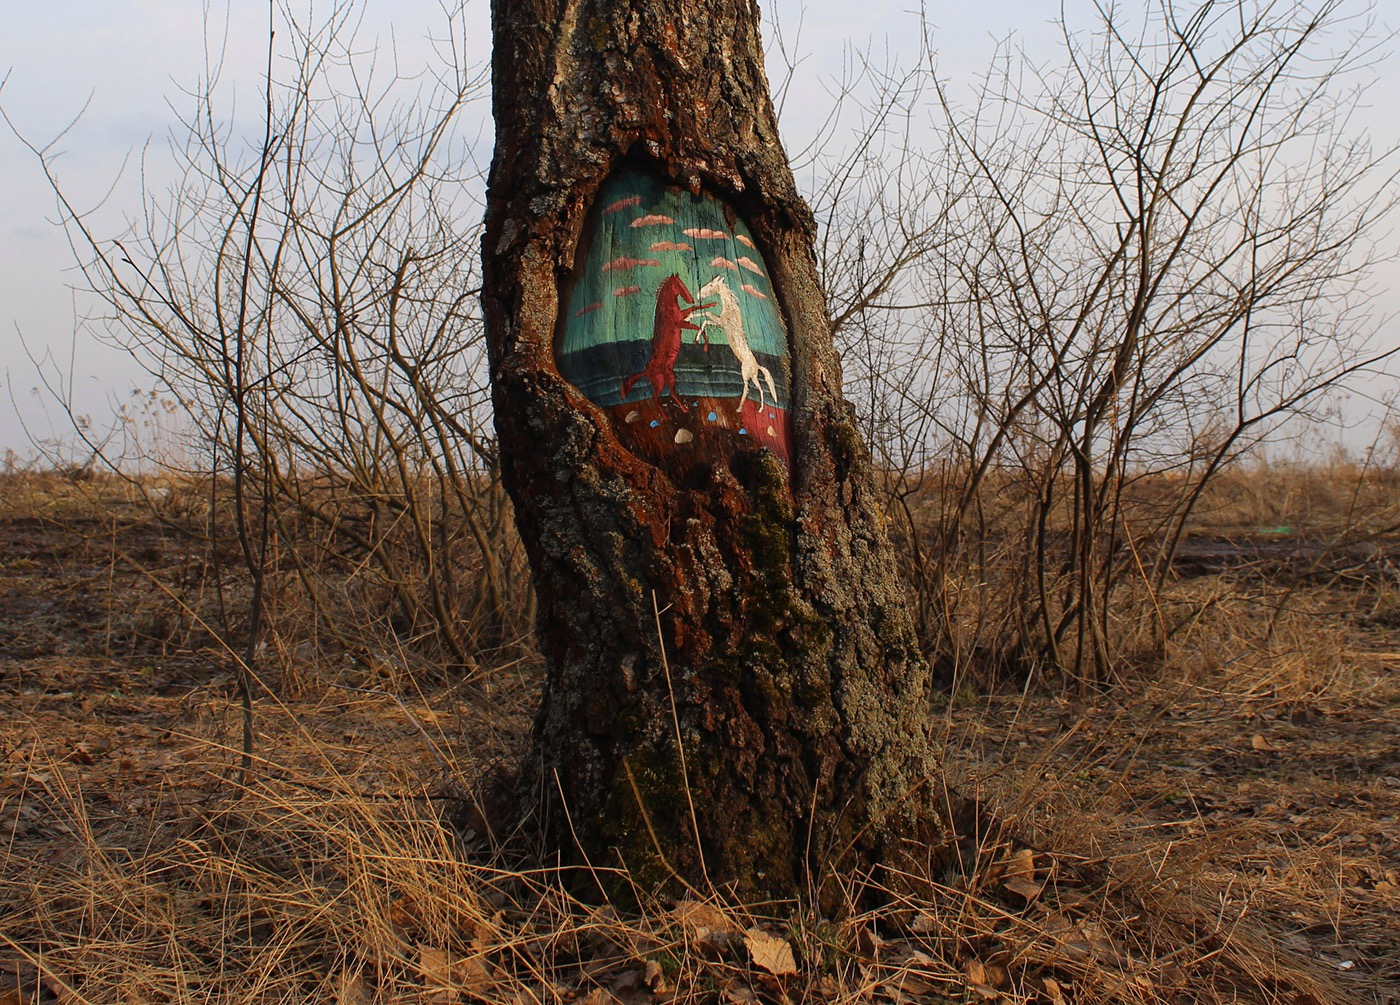 Beautiful and Poetic Drawings on Trees (5 pics)